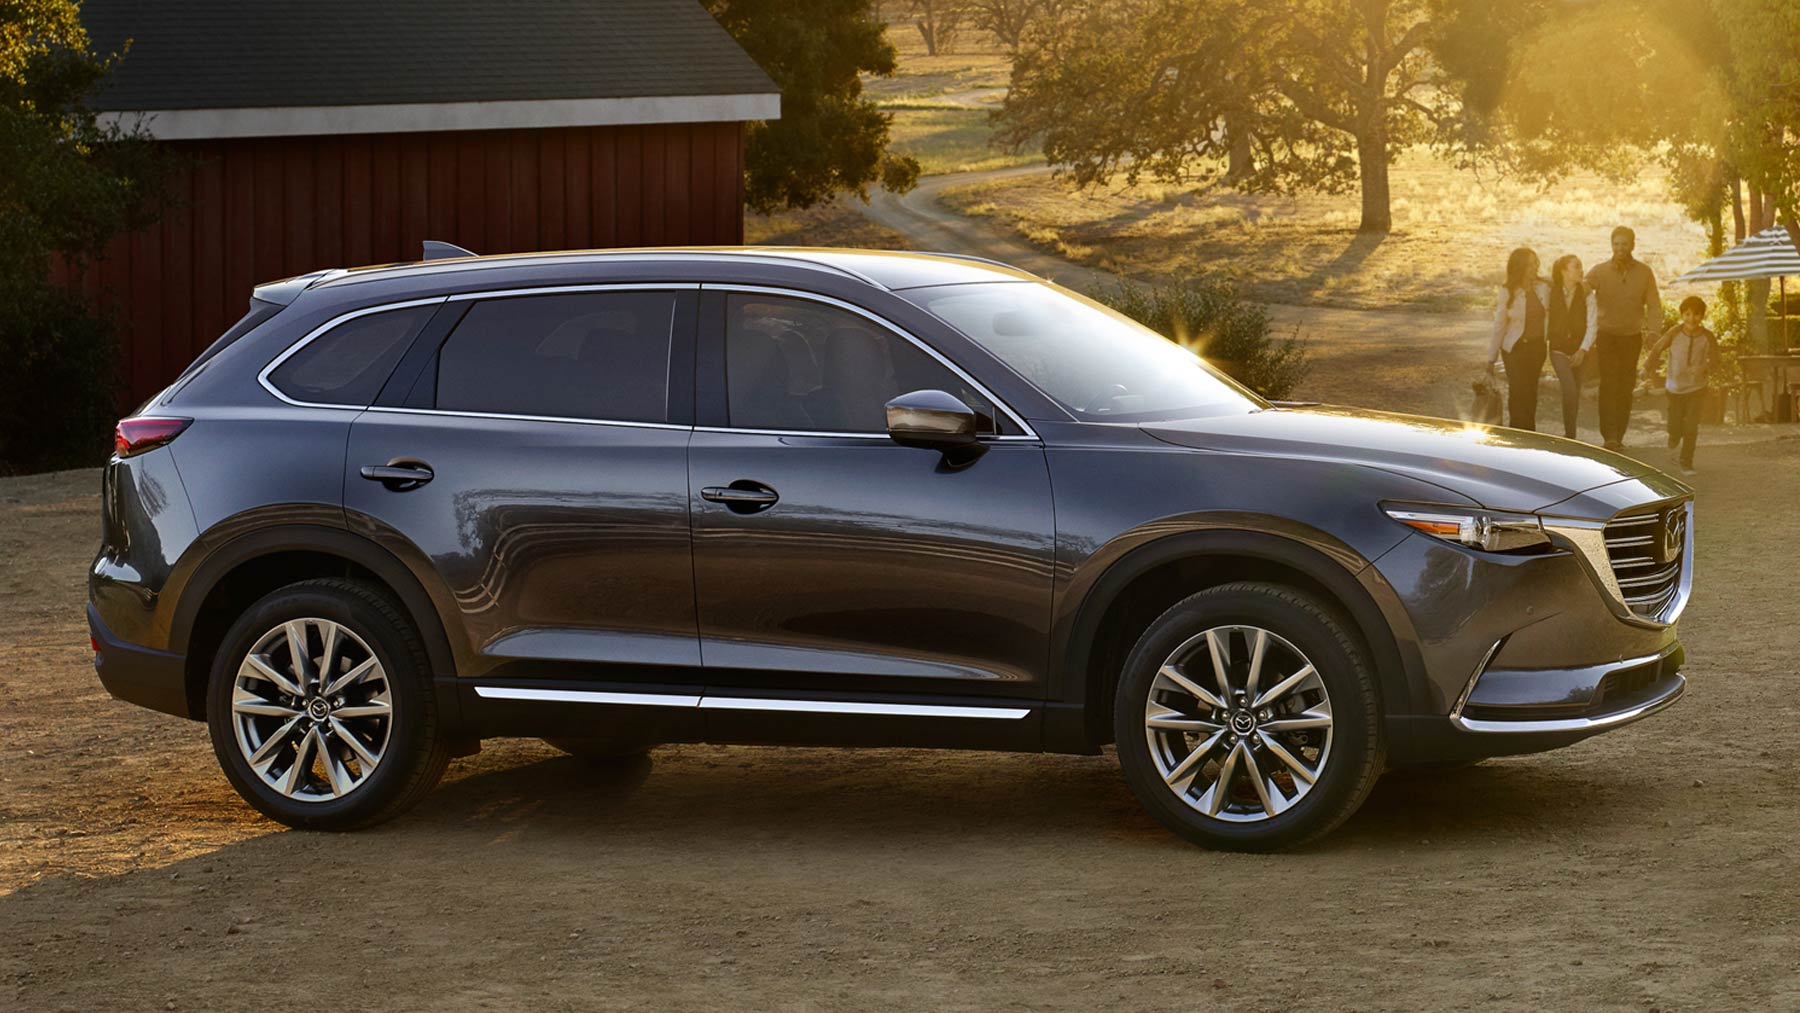 2018 Cx9 >> The SUVs With the Worst Reliability Ratings for 2018